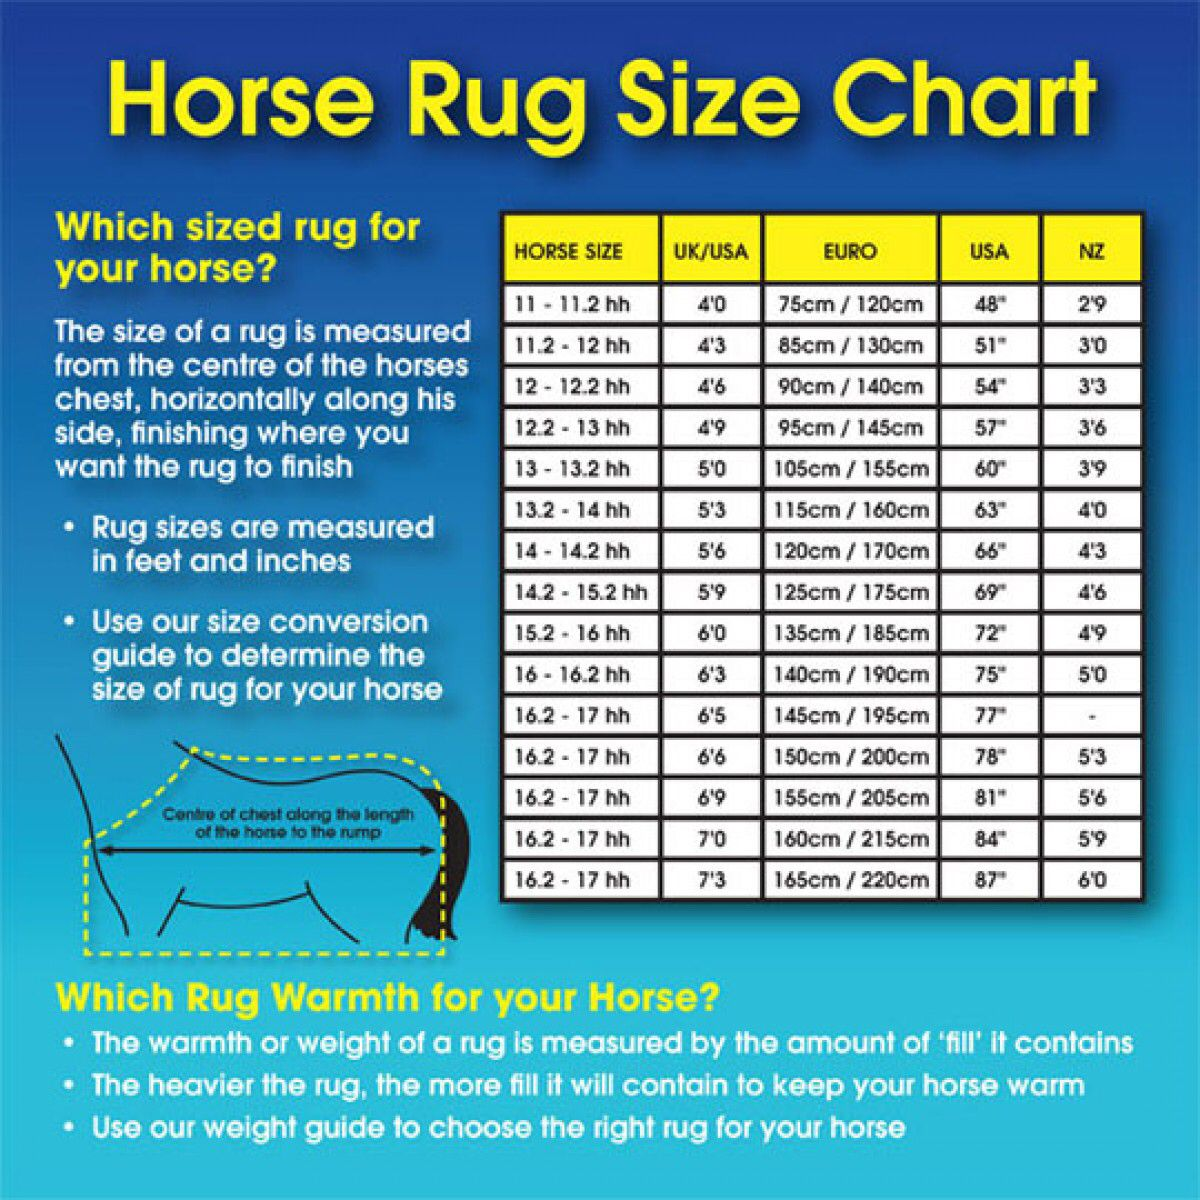 Horse Rug Size Chart